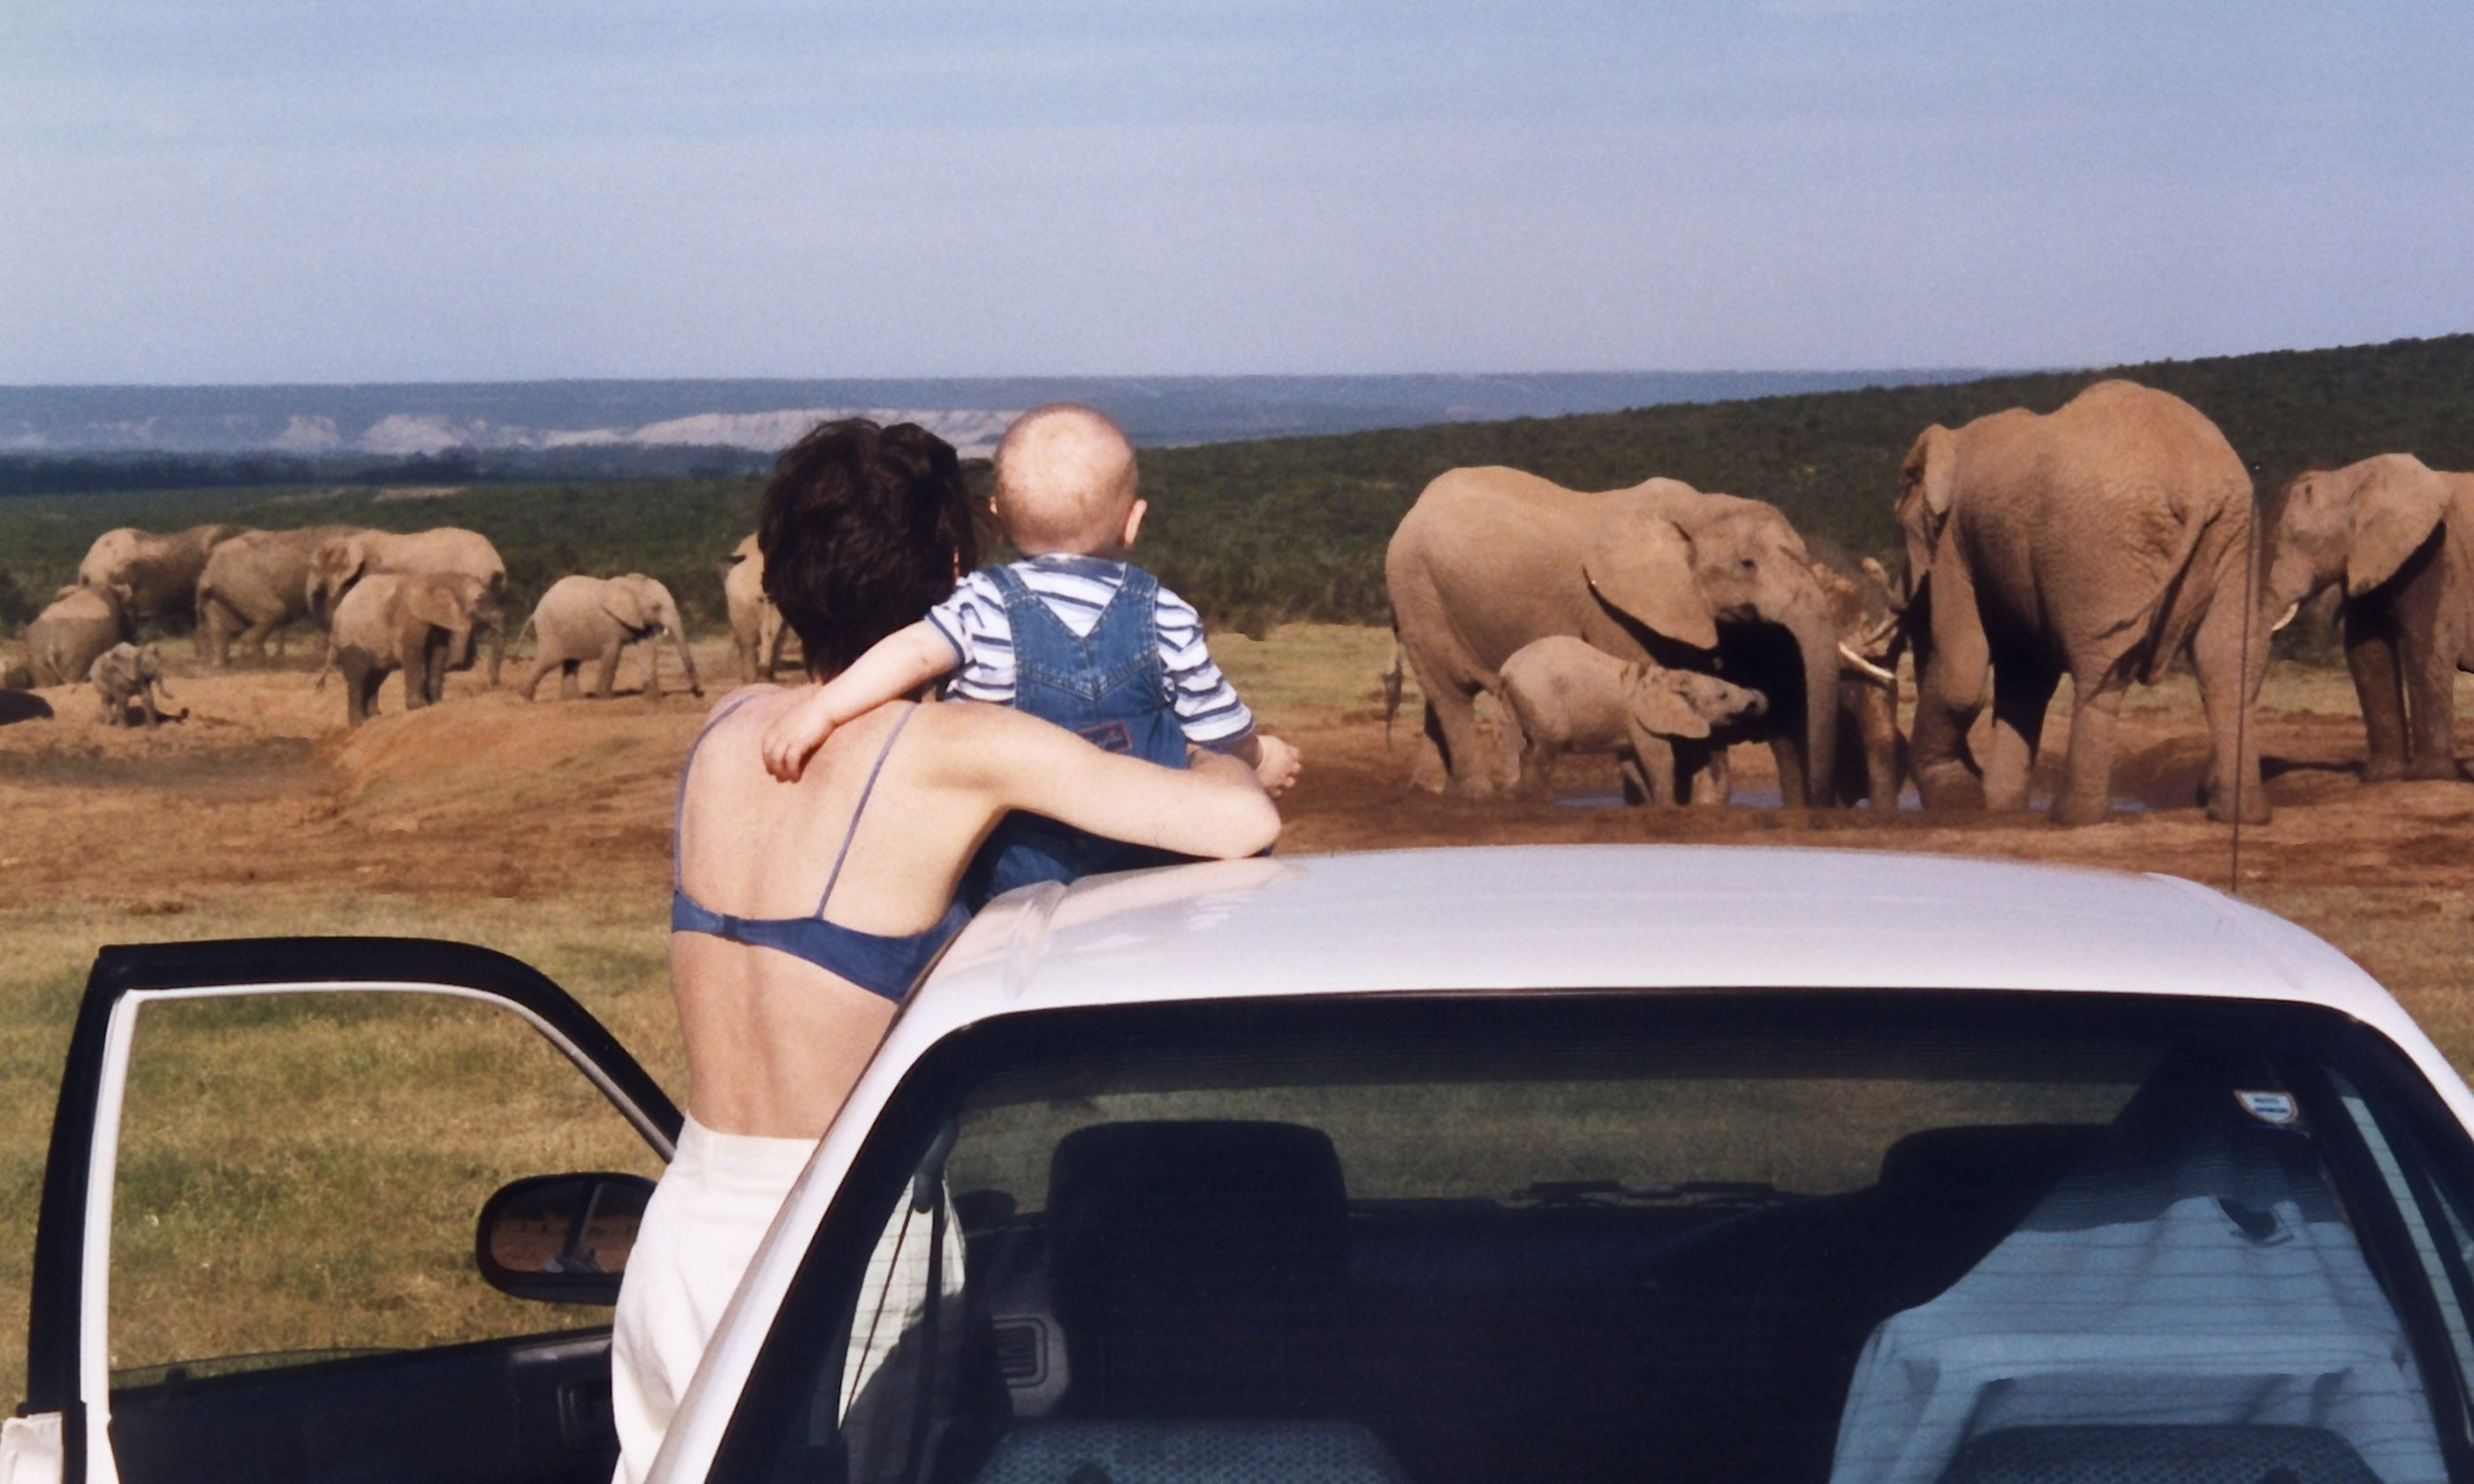 Babe watching elephants (Melanie Gow)